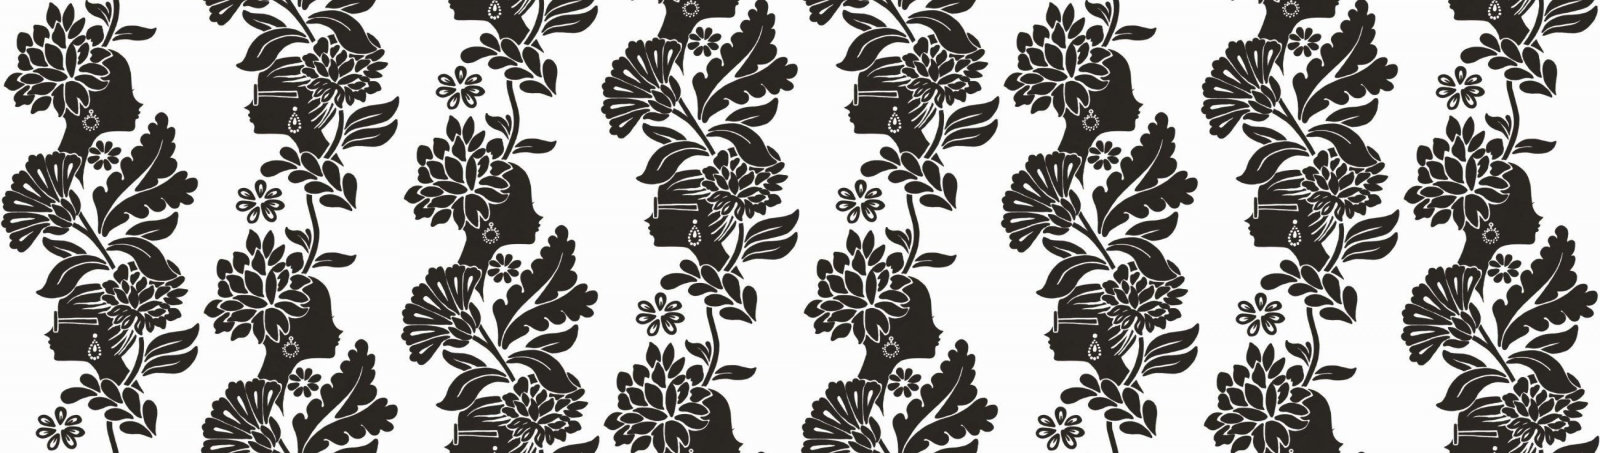 black and white damask wallpaper. Product. Paper